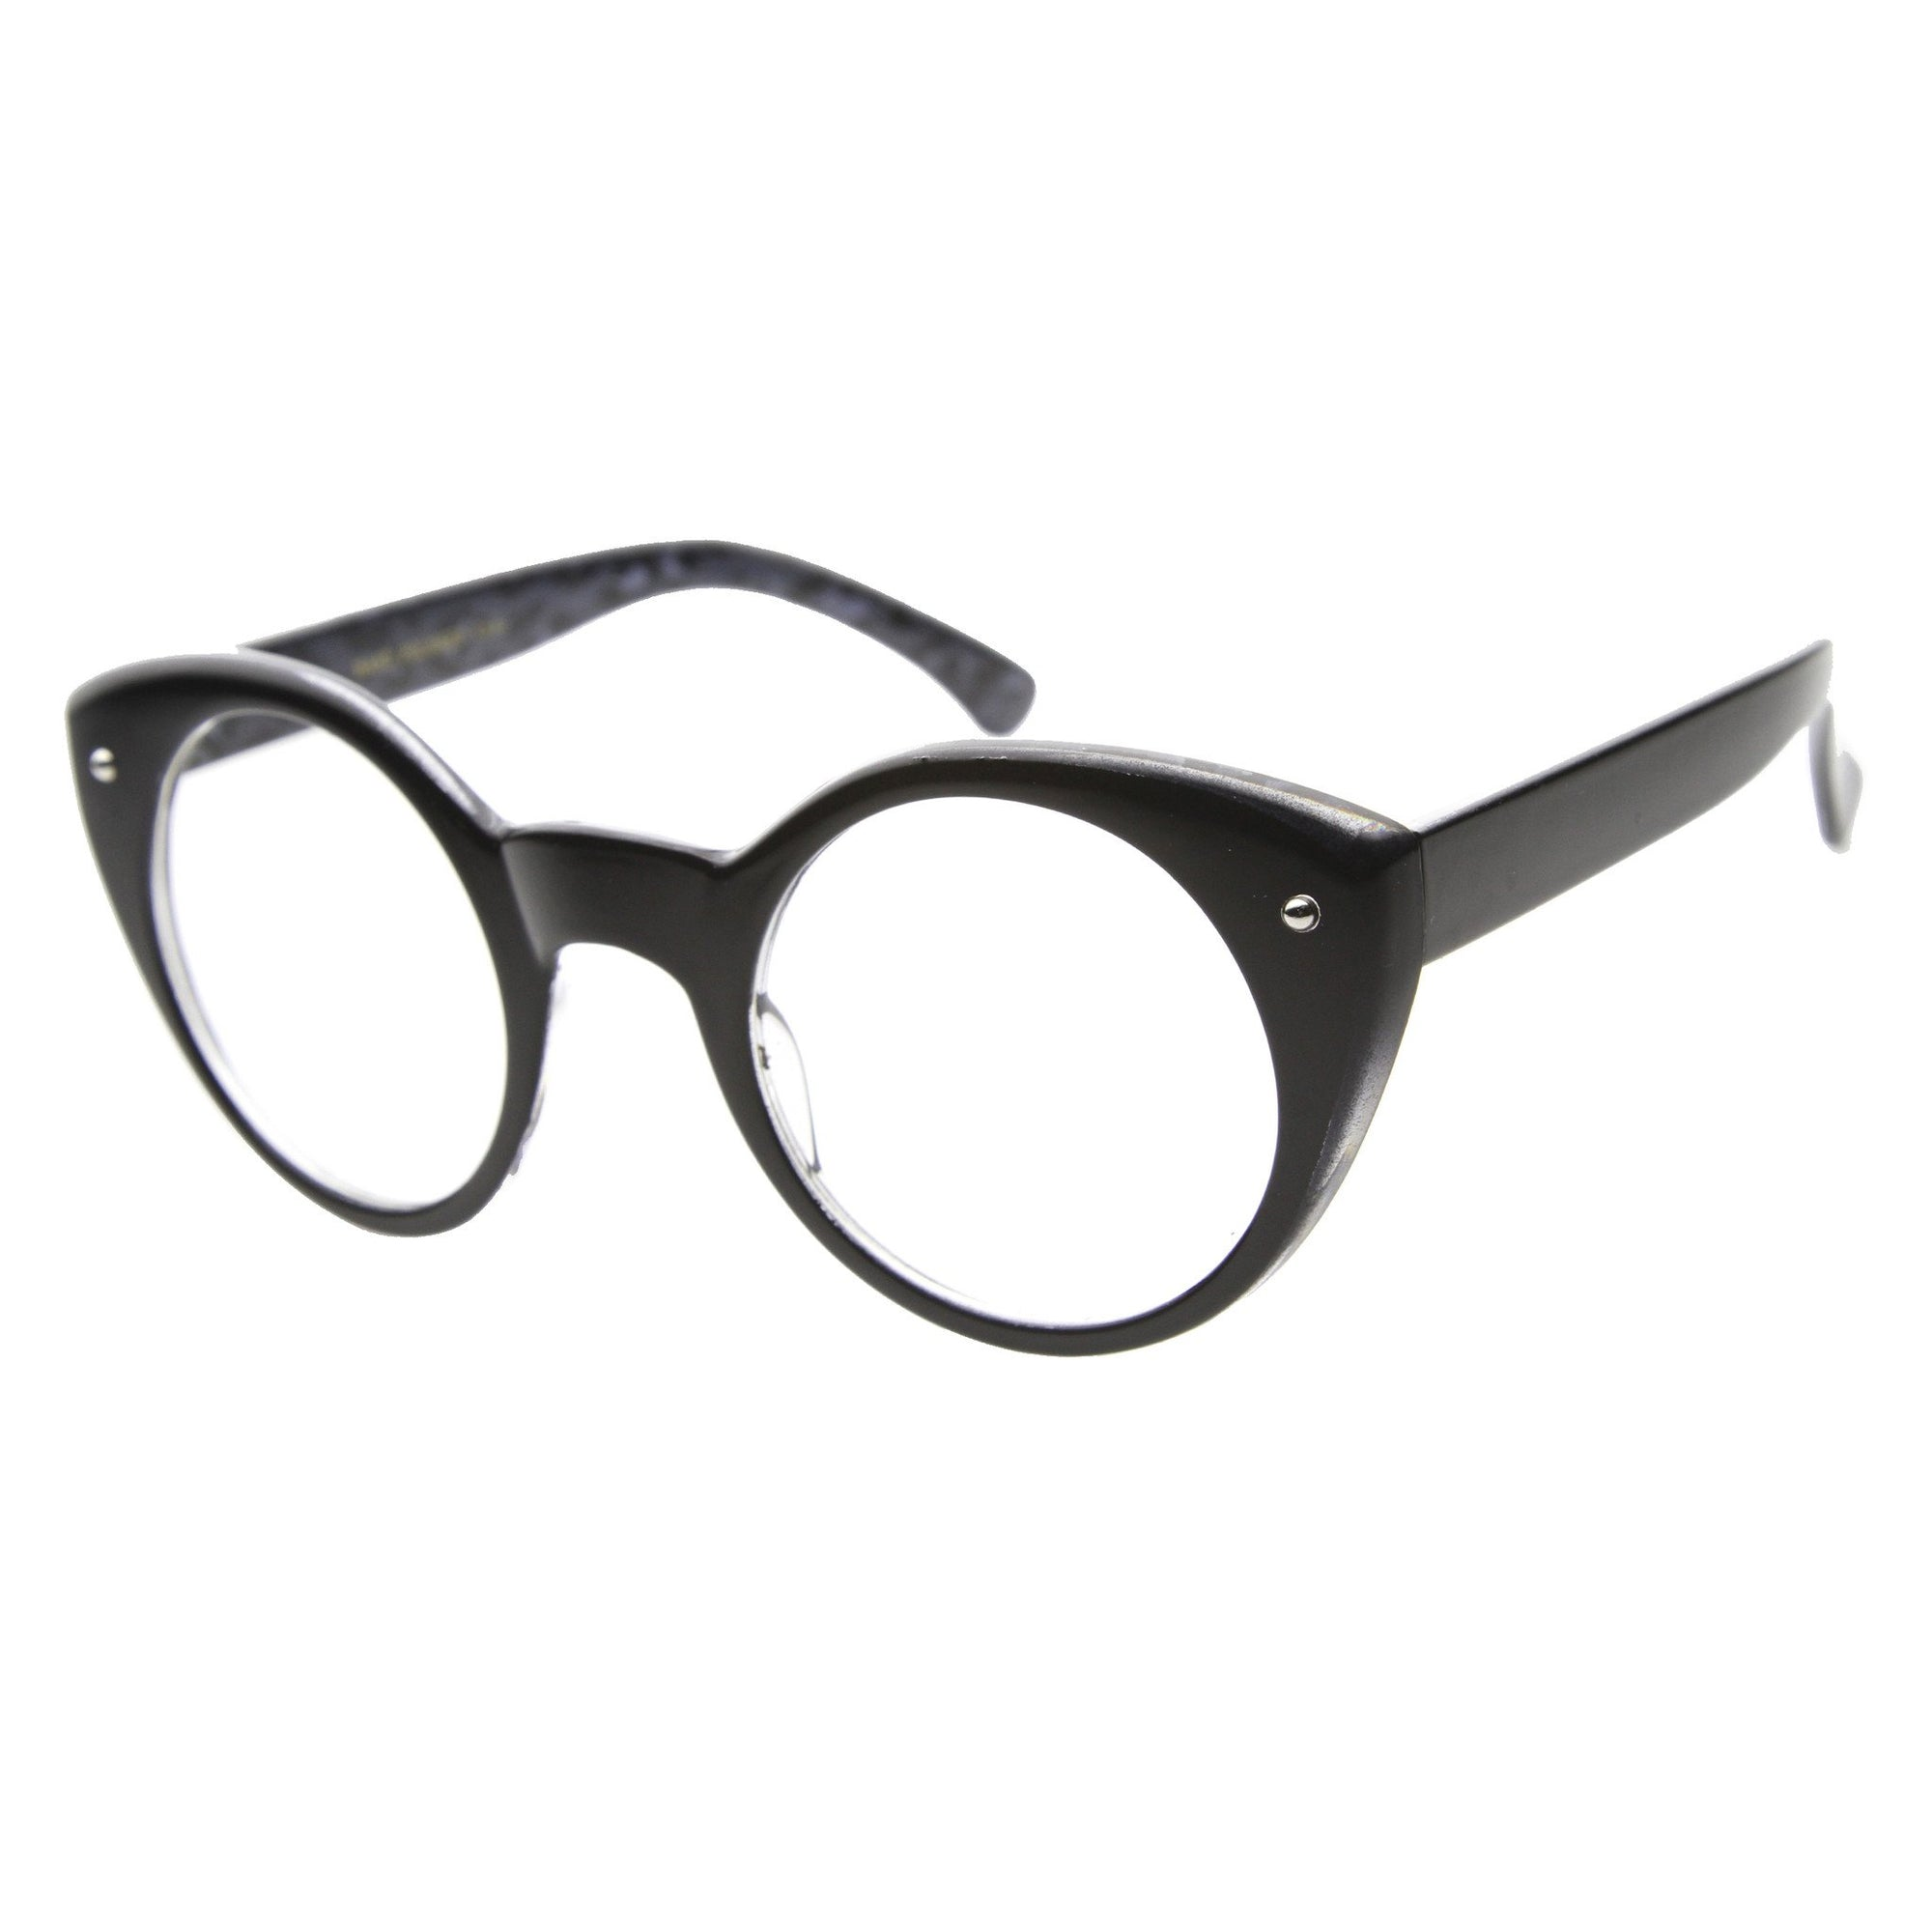 b51c2d2353ff ... Round Cat Eye Clear Lens Glasses 9647 · Black Cheetah Clear · Black Cheetah  Clear